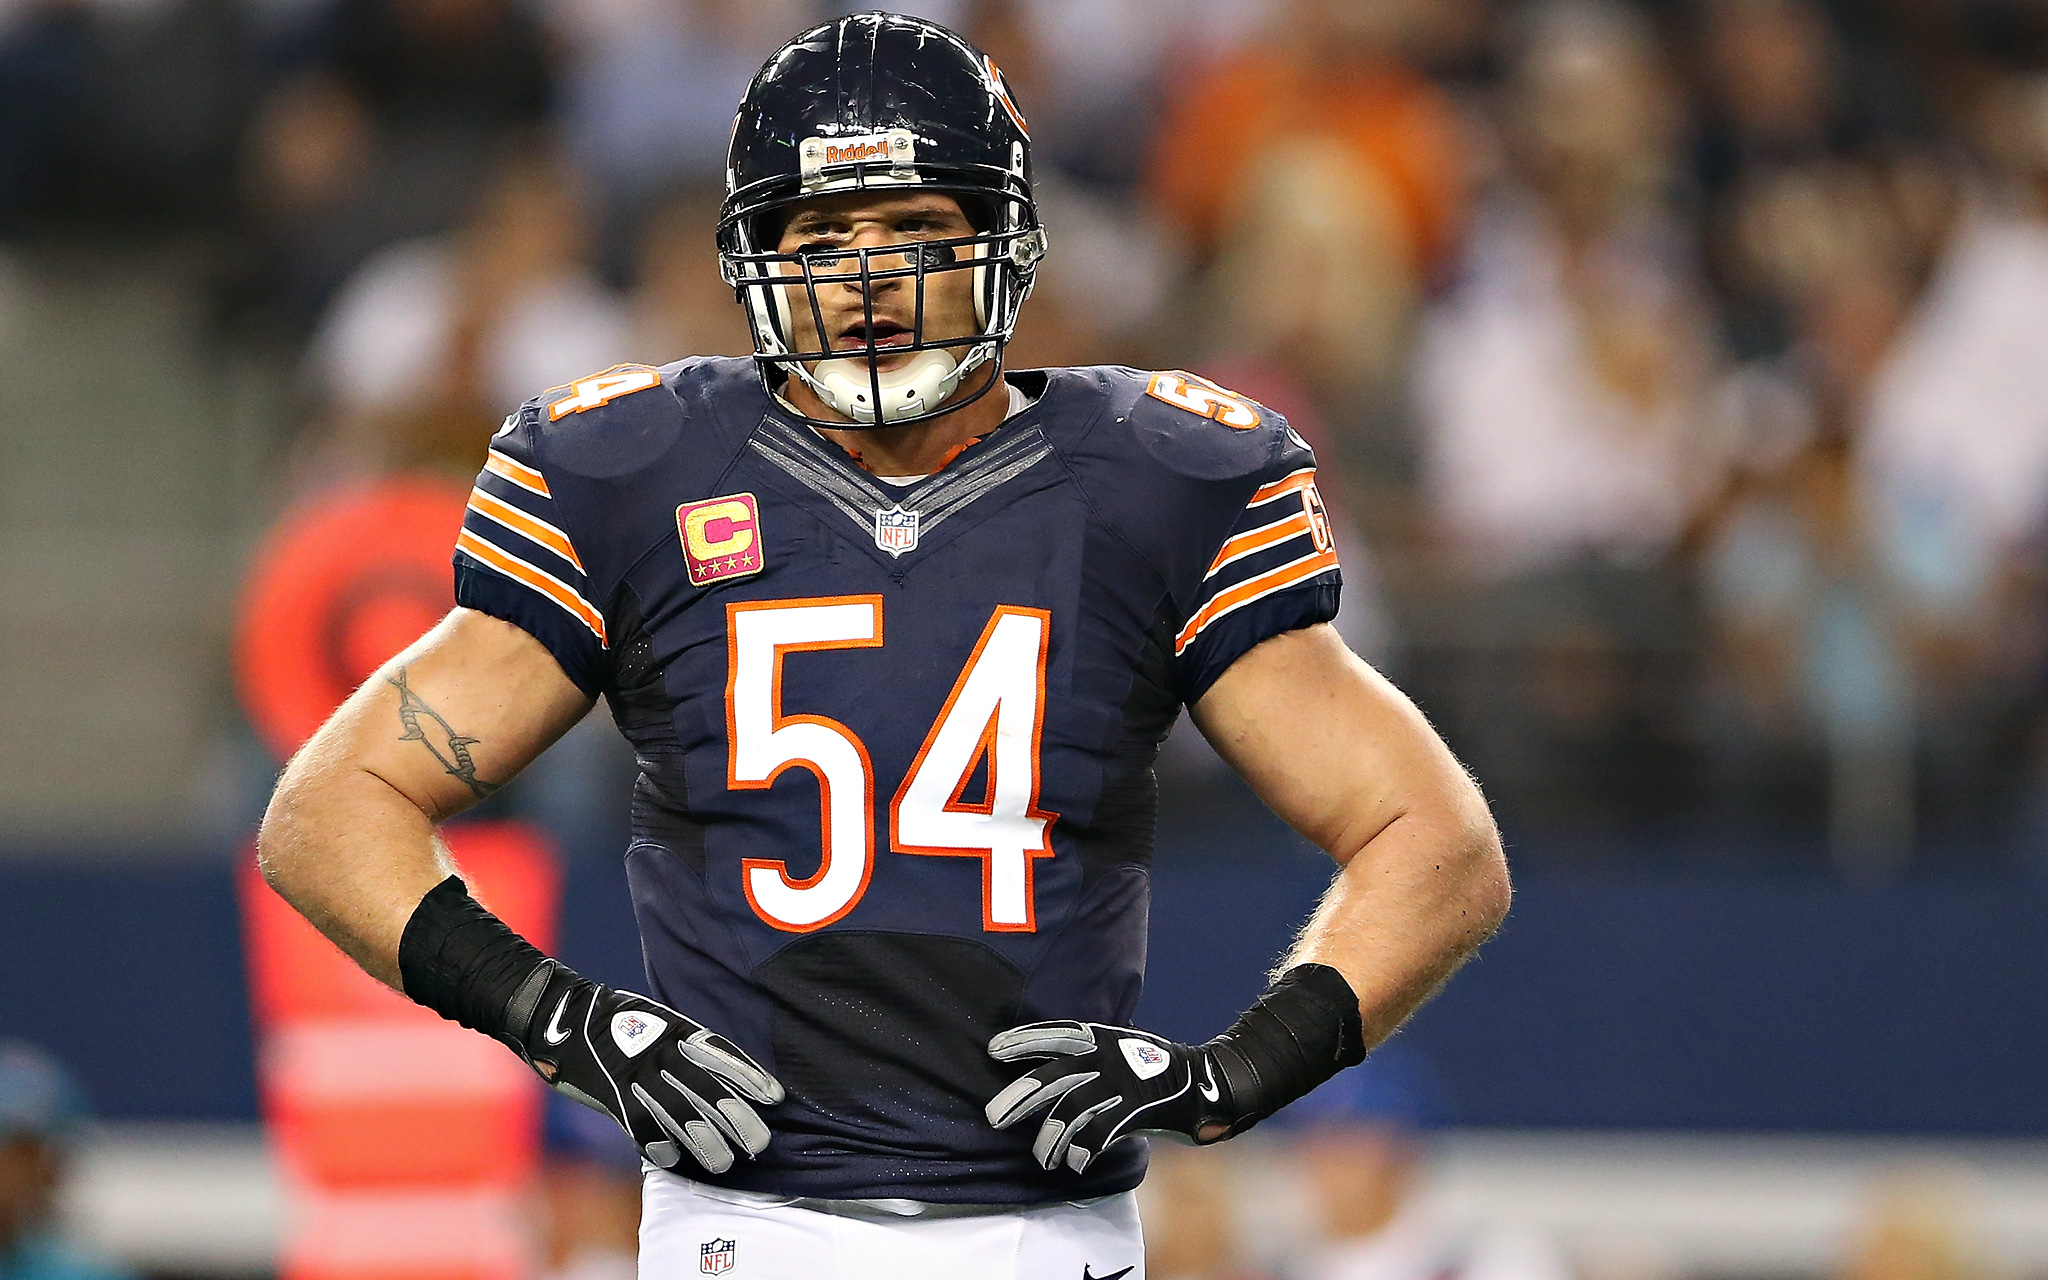 finest selection 2616c c7fad Brian Urlacher...Thanks for the Memories - DRESSED TO A T